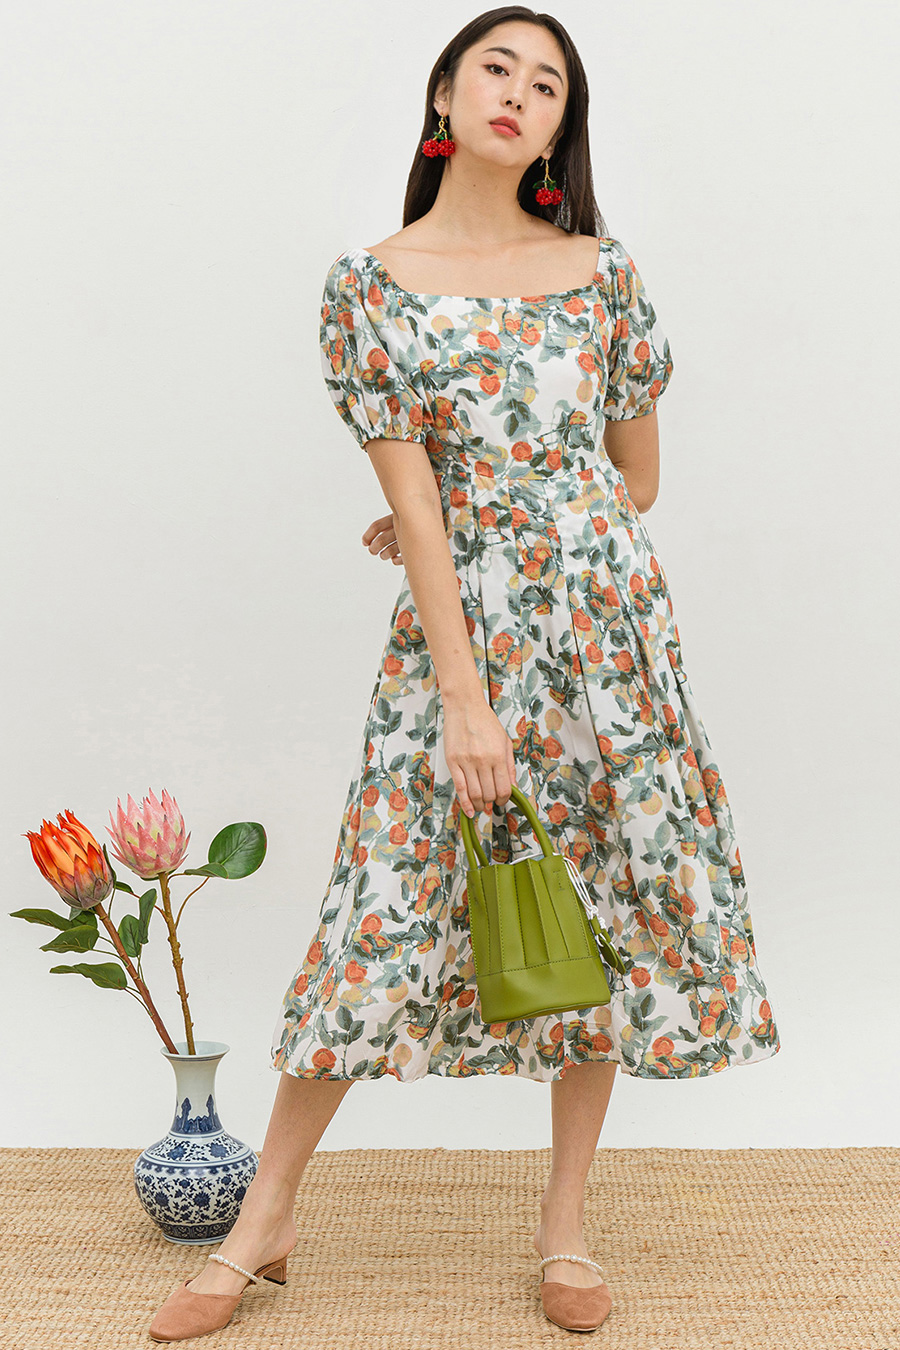 YATSUMU DRESS - TANGERINE